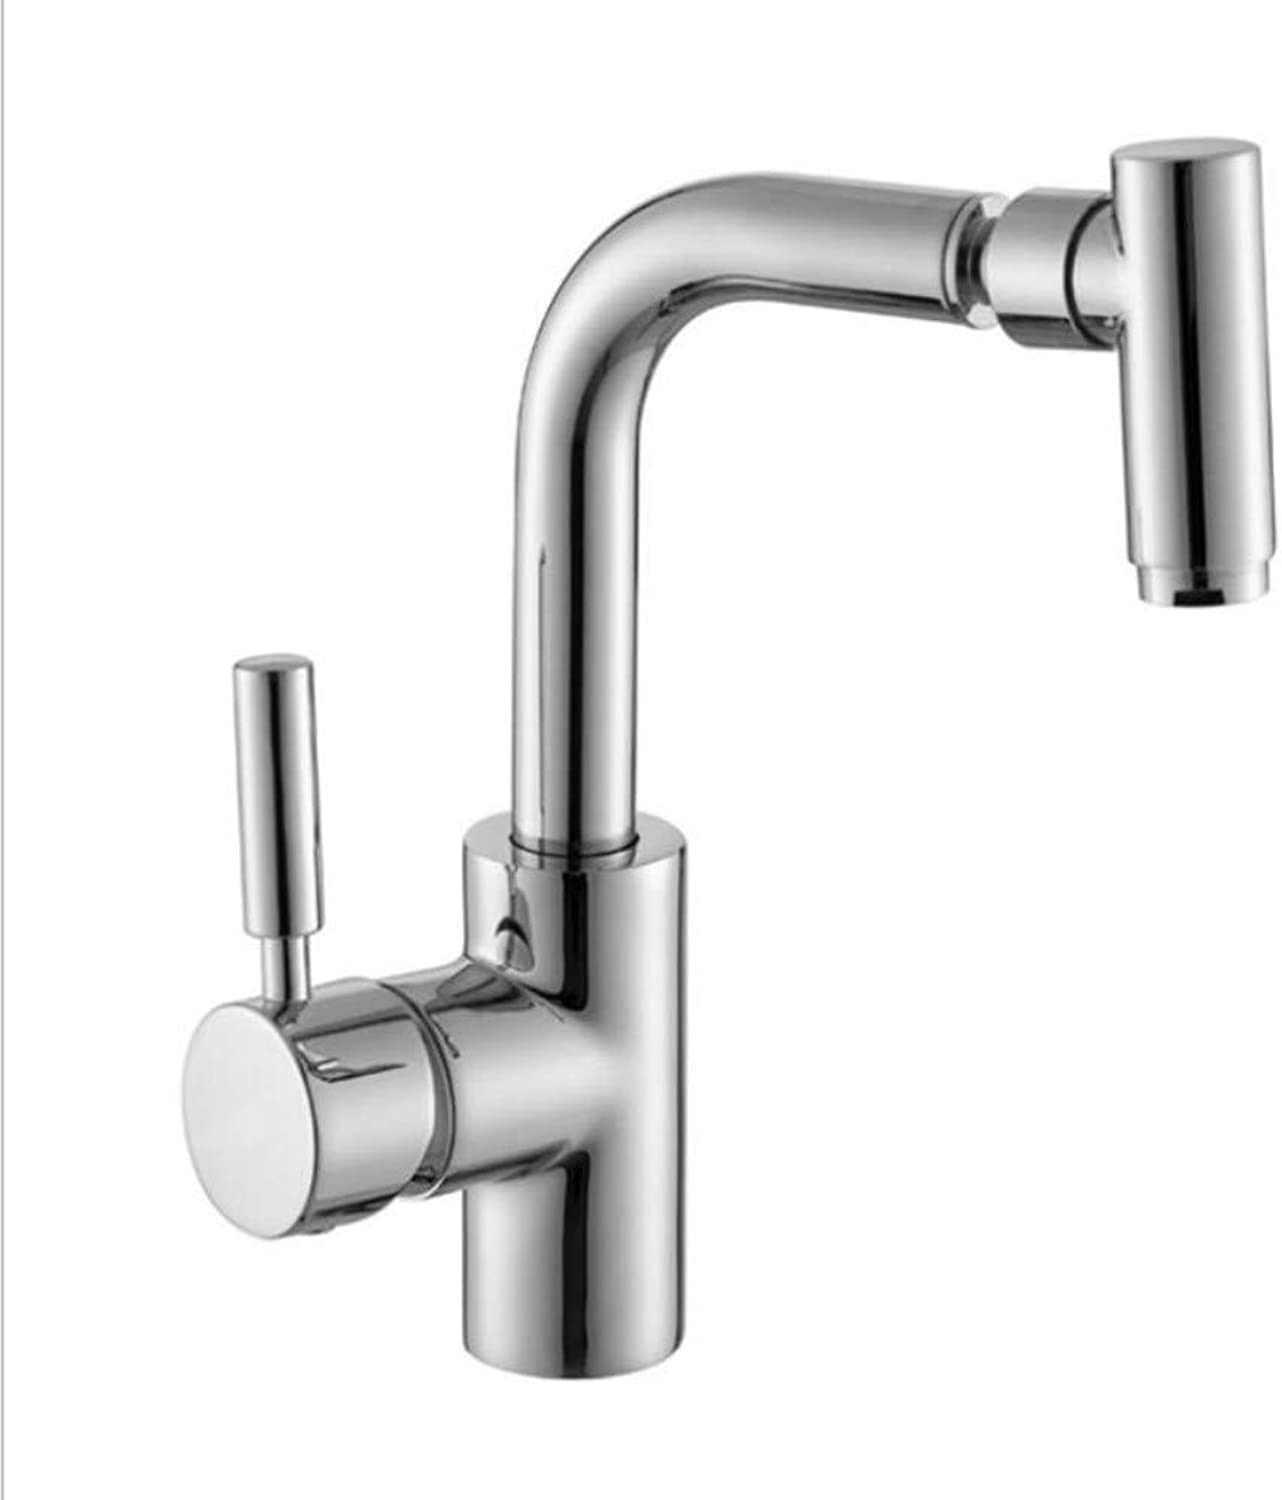 Bathroom Sink Basin Lever Mixer Tap Copper Kitchen Faucet Cold and Hot Basin Faucet Double Control Vegetable Wash Basin Faucet Sink Faucet 360 Degrees